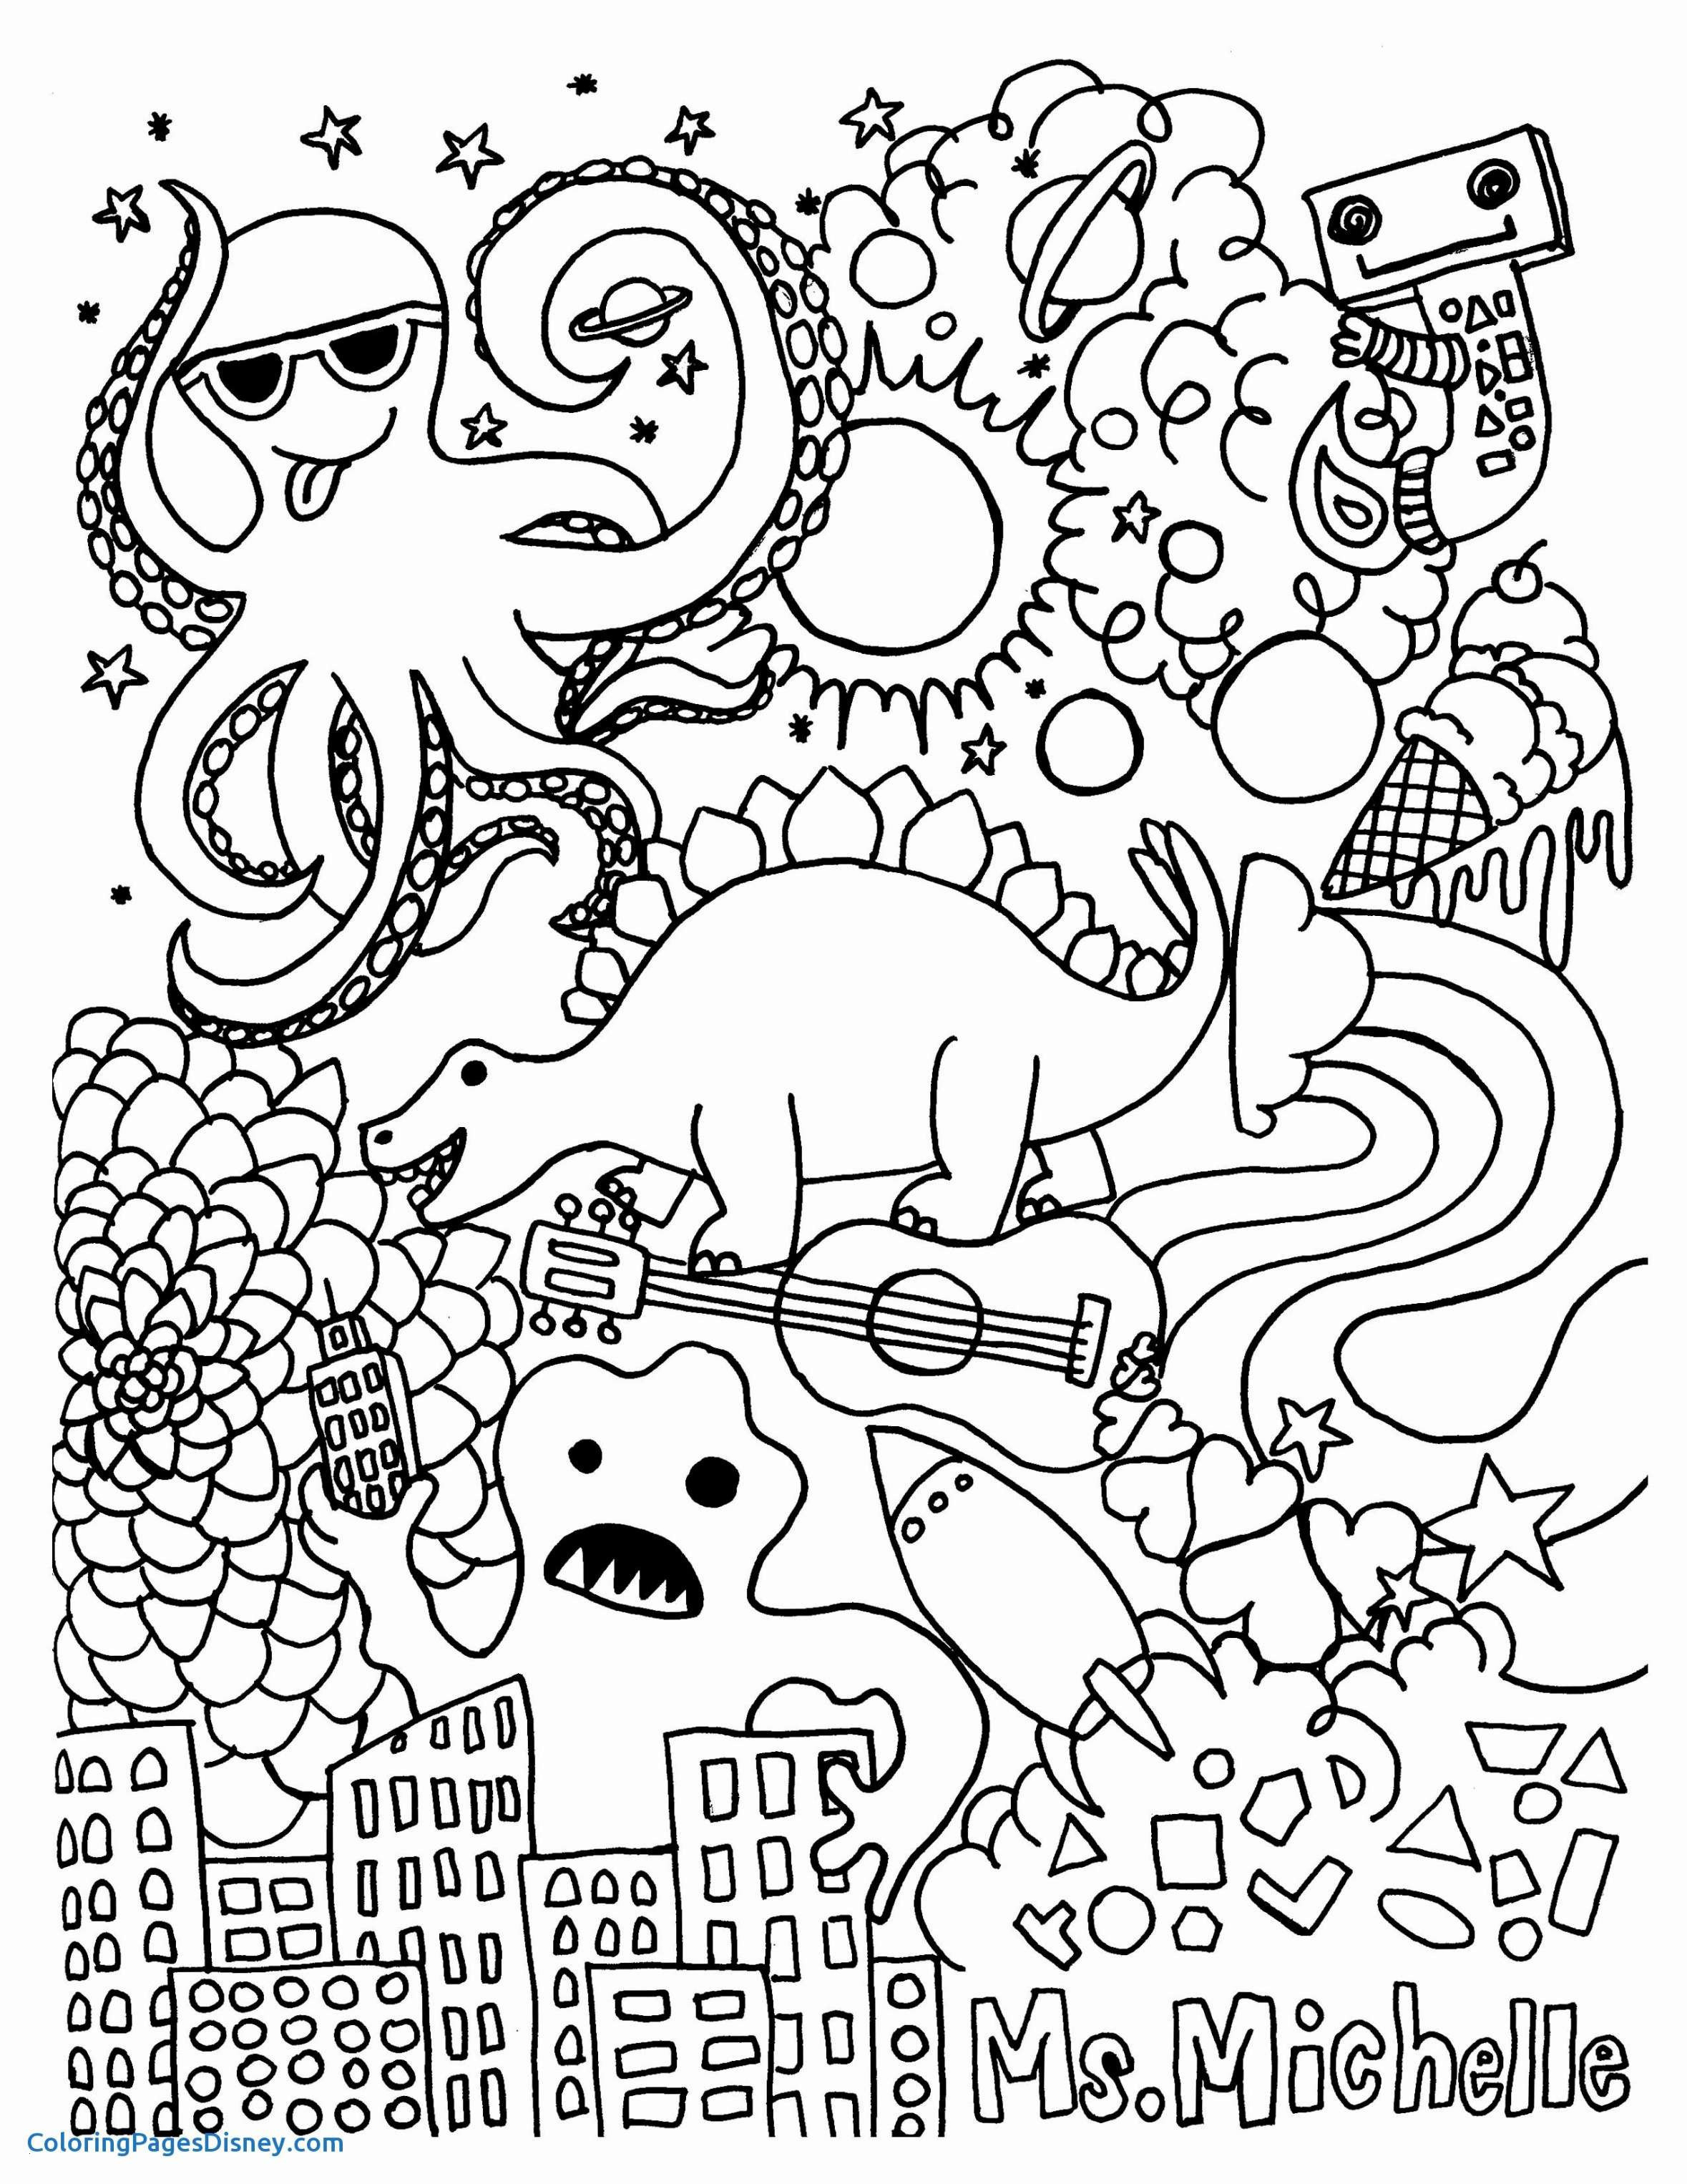 Malvorlagen Monster High Inspirierend Malvorlagen Minion Elegant Christmas Coloring Pages Minions Schön Stock